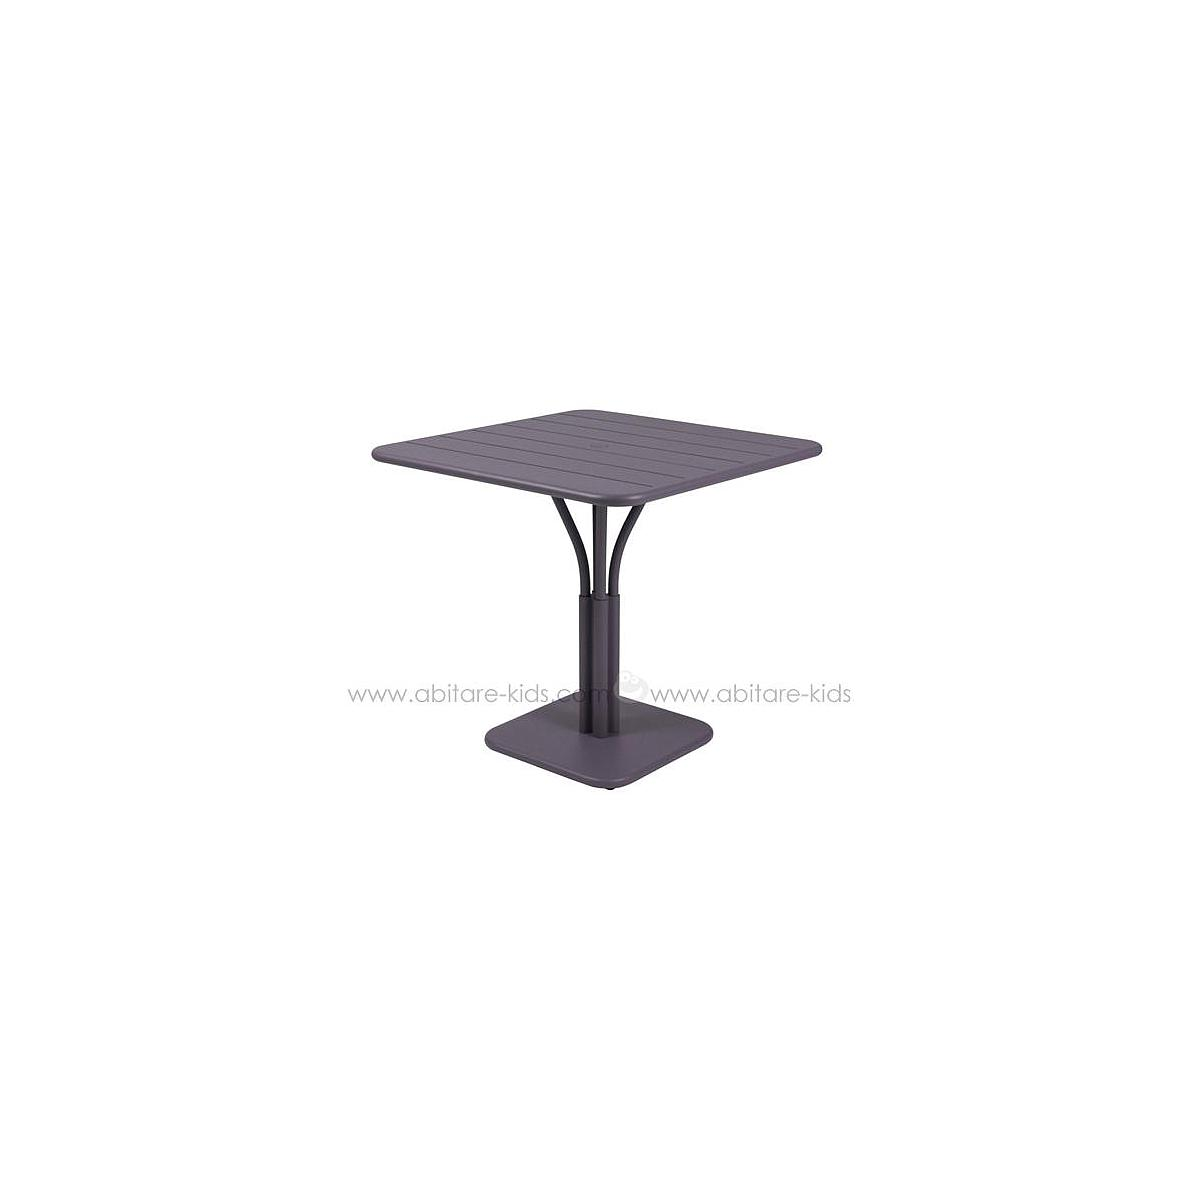 LUXEMBOURG by Fermob Table 80x80 cm prune